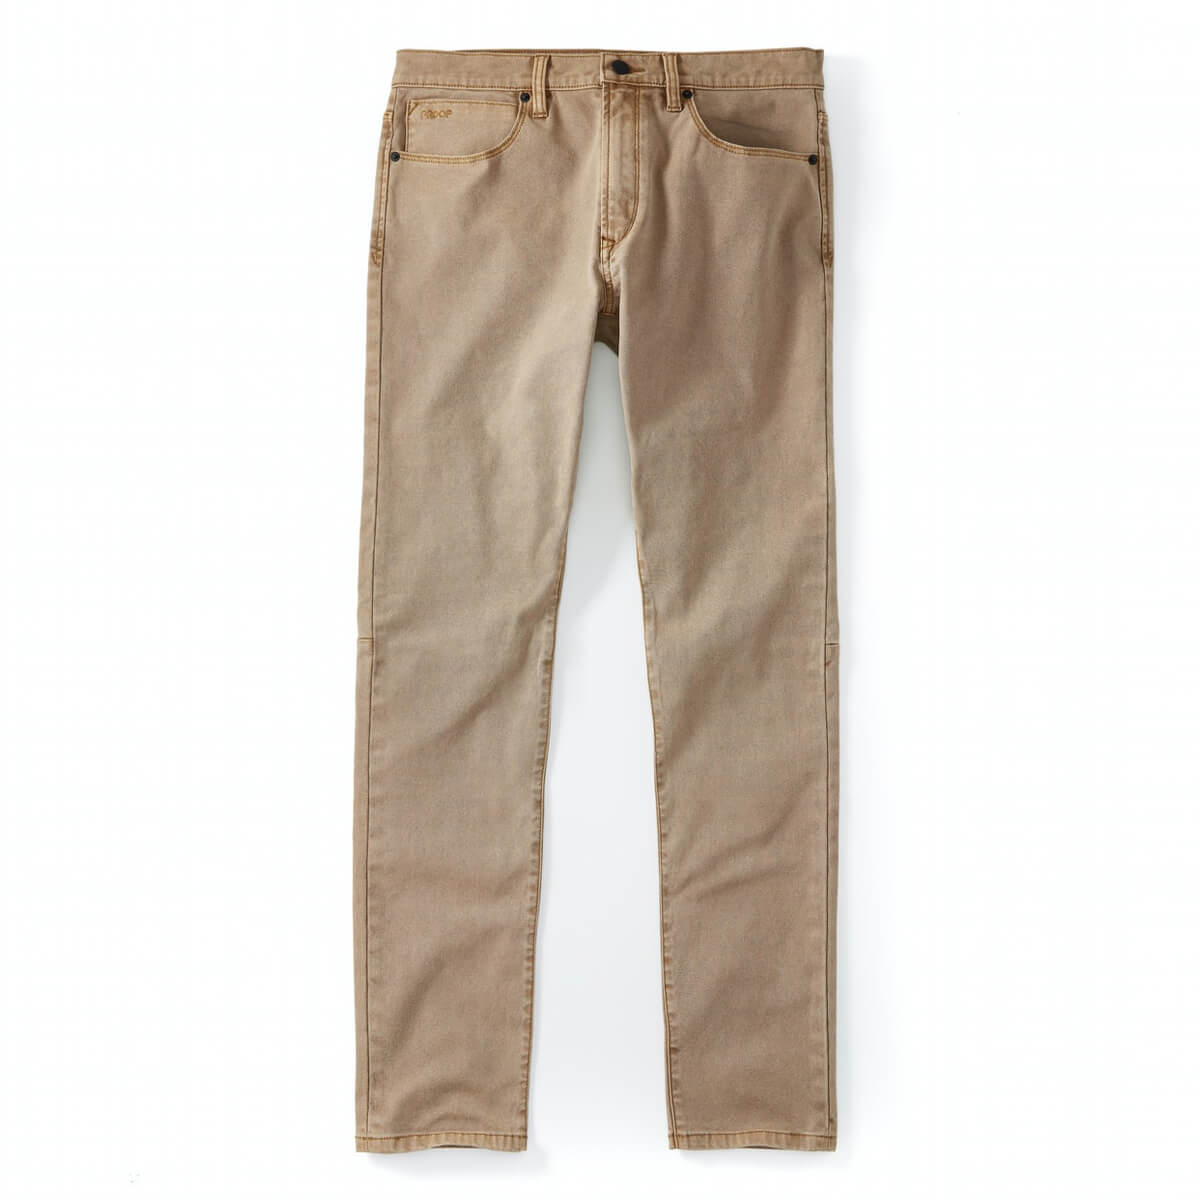 Proof Rover Pants